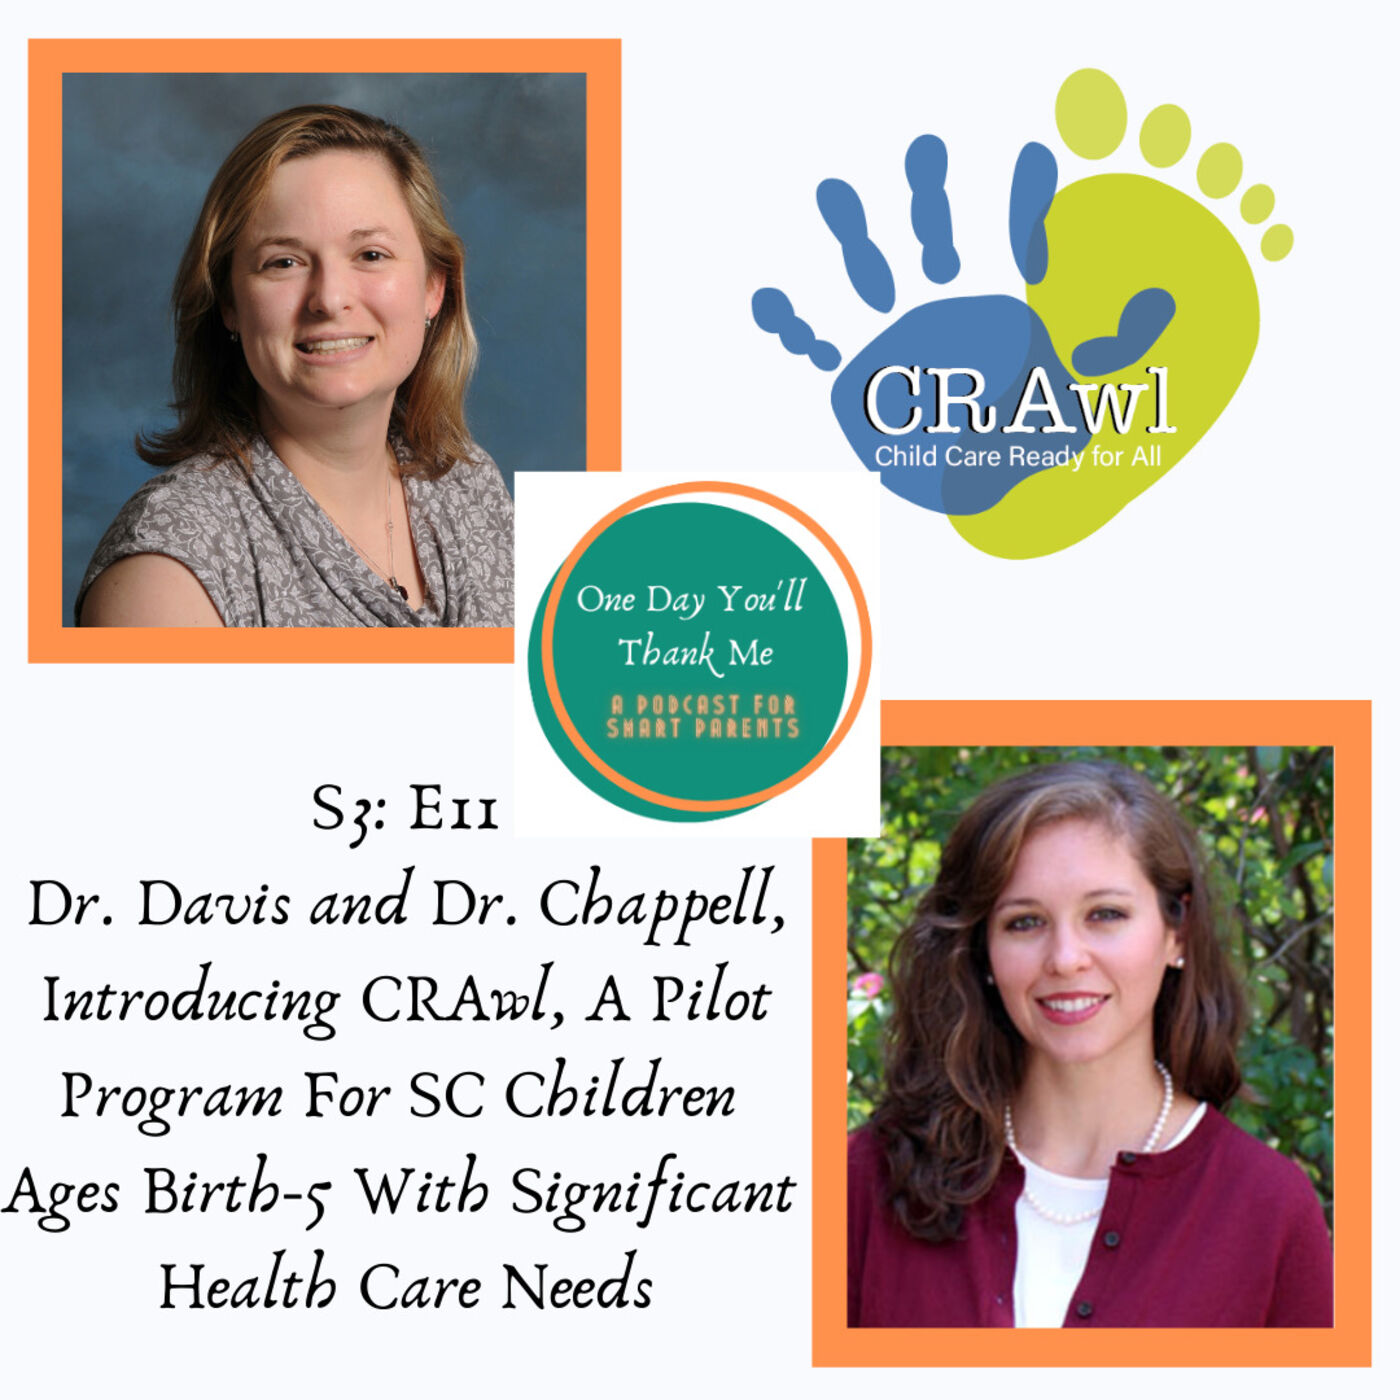 S3: E11 Guest Experts: Dr. Davis and Dr. Chappell, Introducing CRAwl, A Pilot Program For SC Children Ages Birth-5 With Significant Health Care Needs